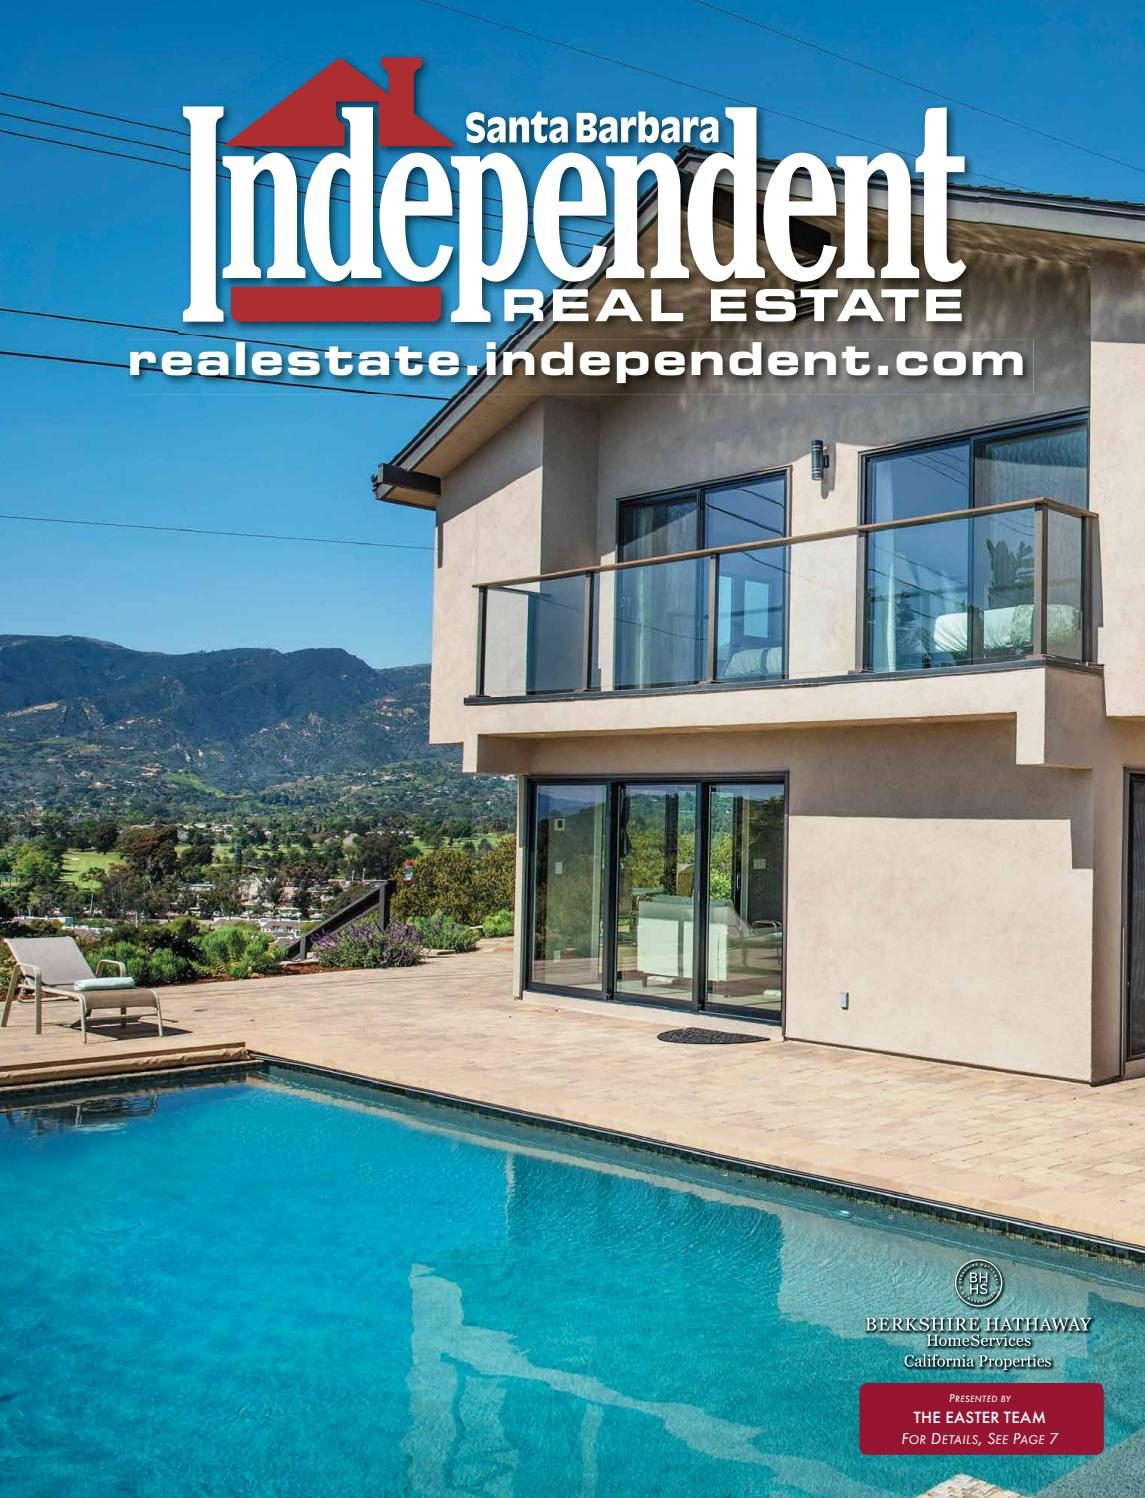 Santa Barbara Independent Real Estate, 04/26/18 by SB Independent ...